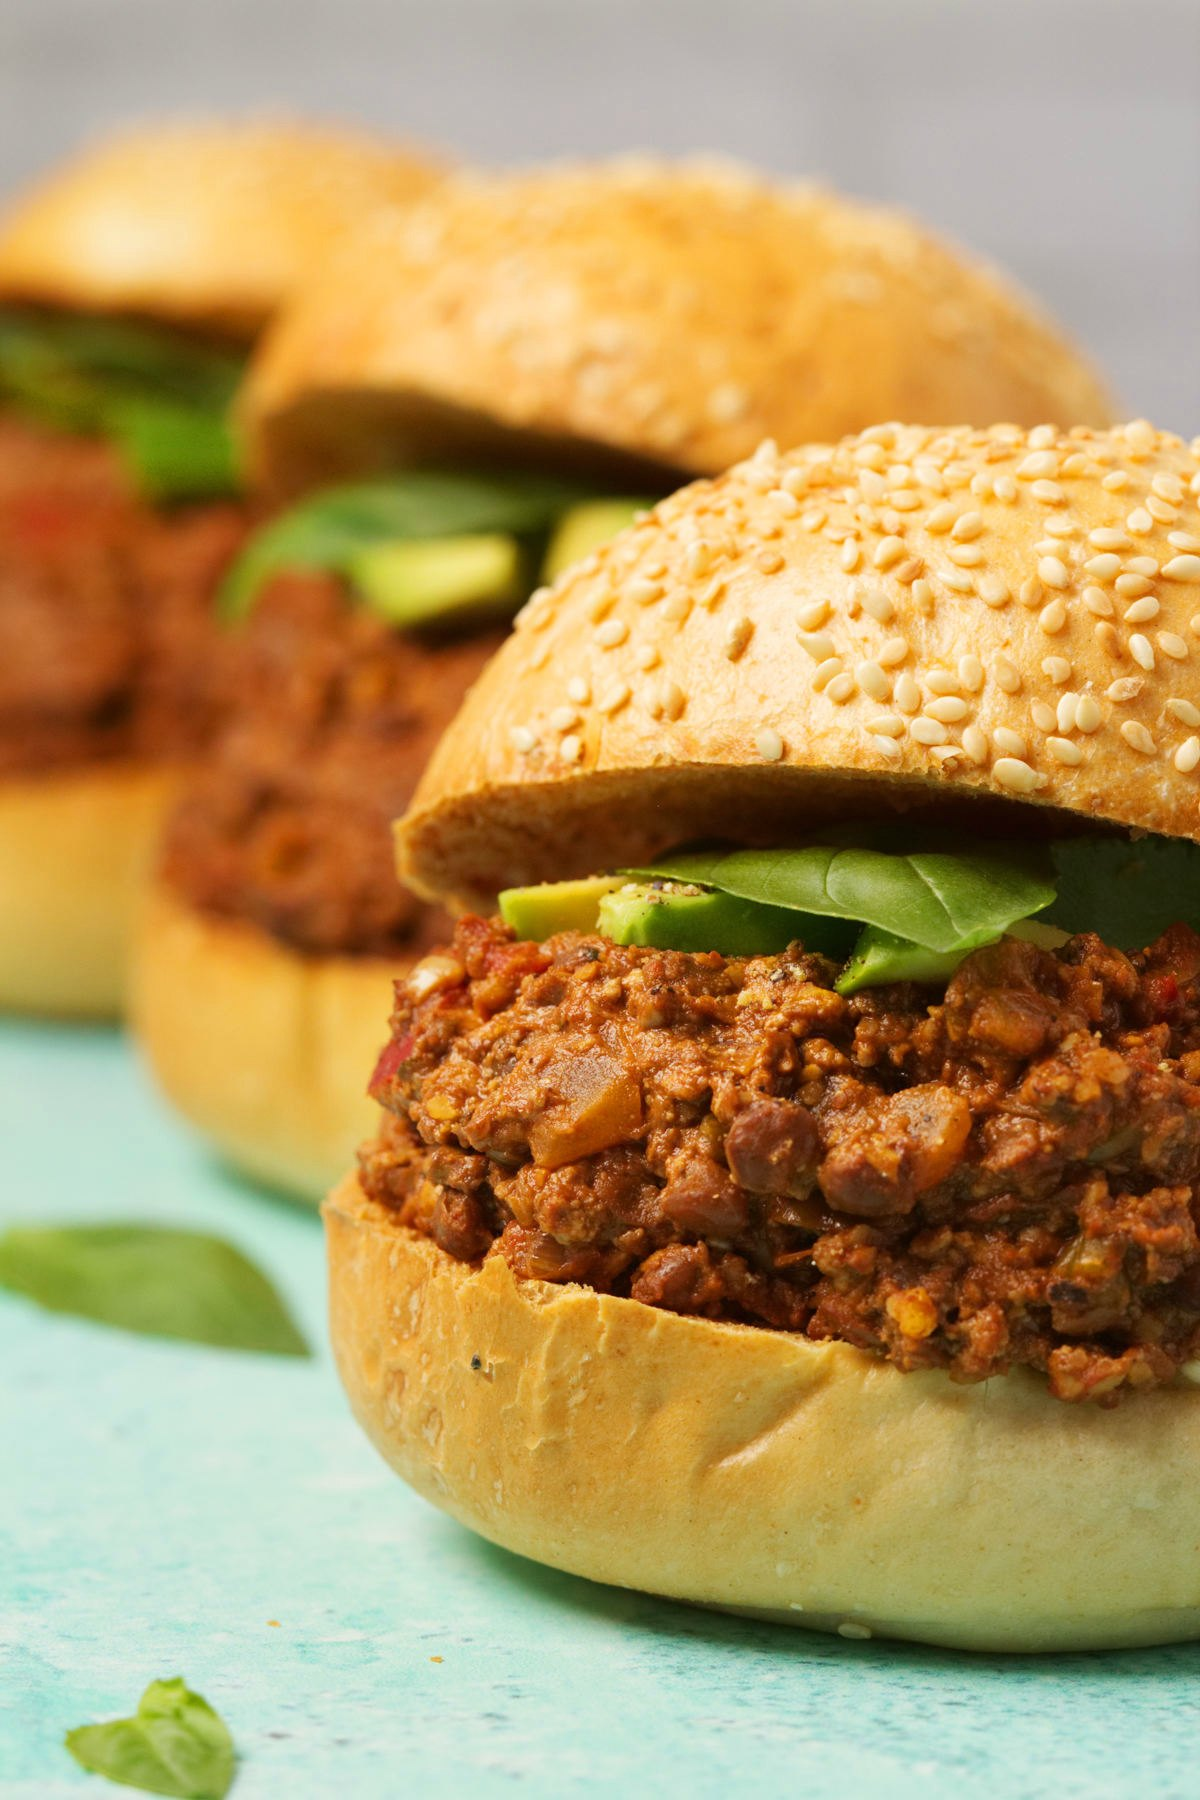 Vegan Sloppy Joes topped with sliced avocado and fresh basil.